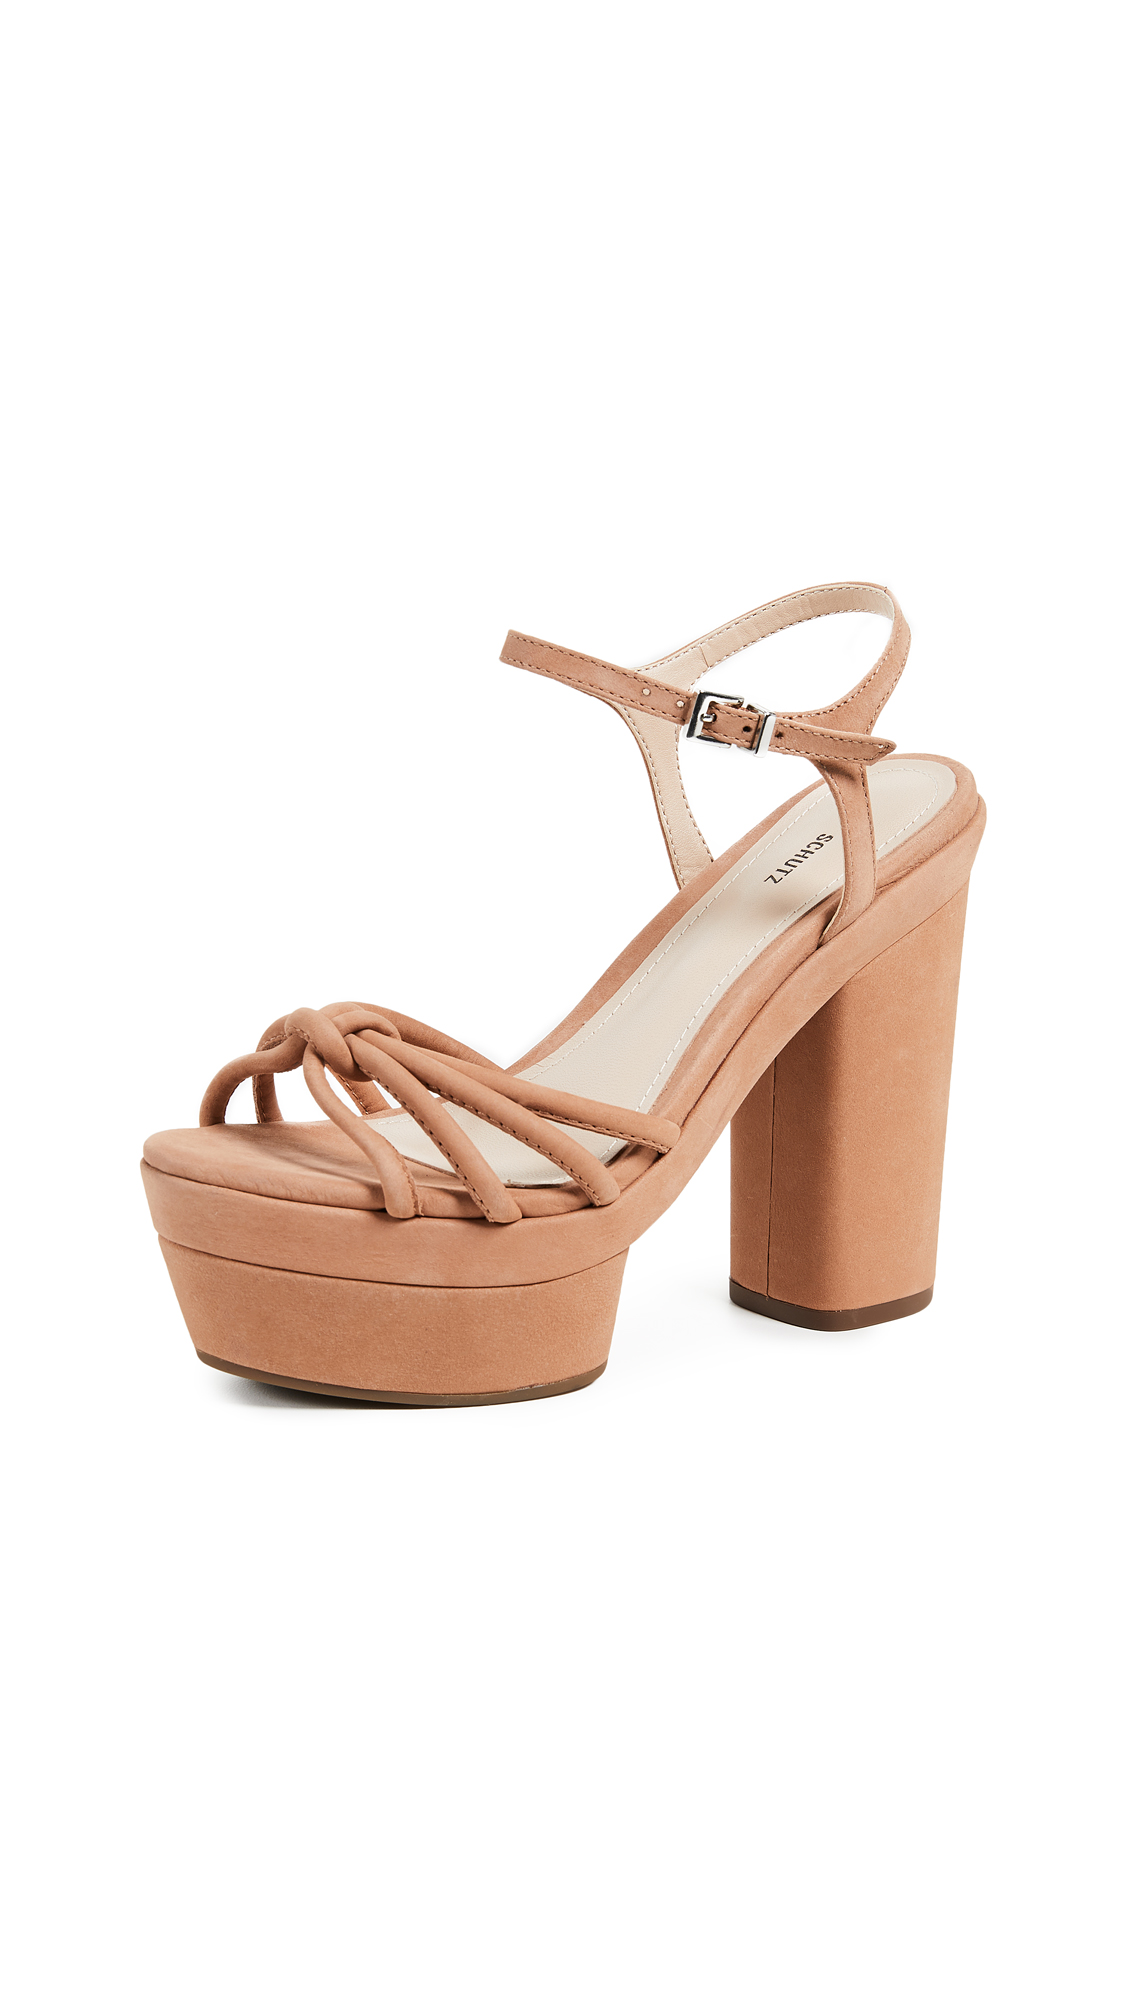 Schutz Faubina Platform Sandals - Toasted Nut